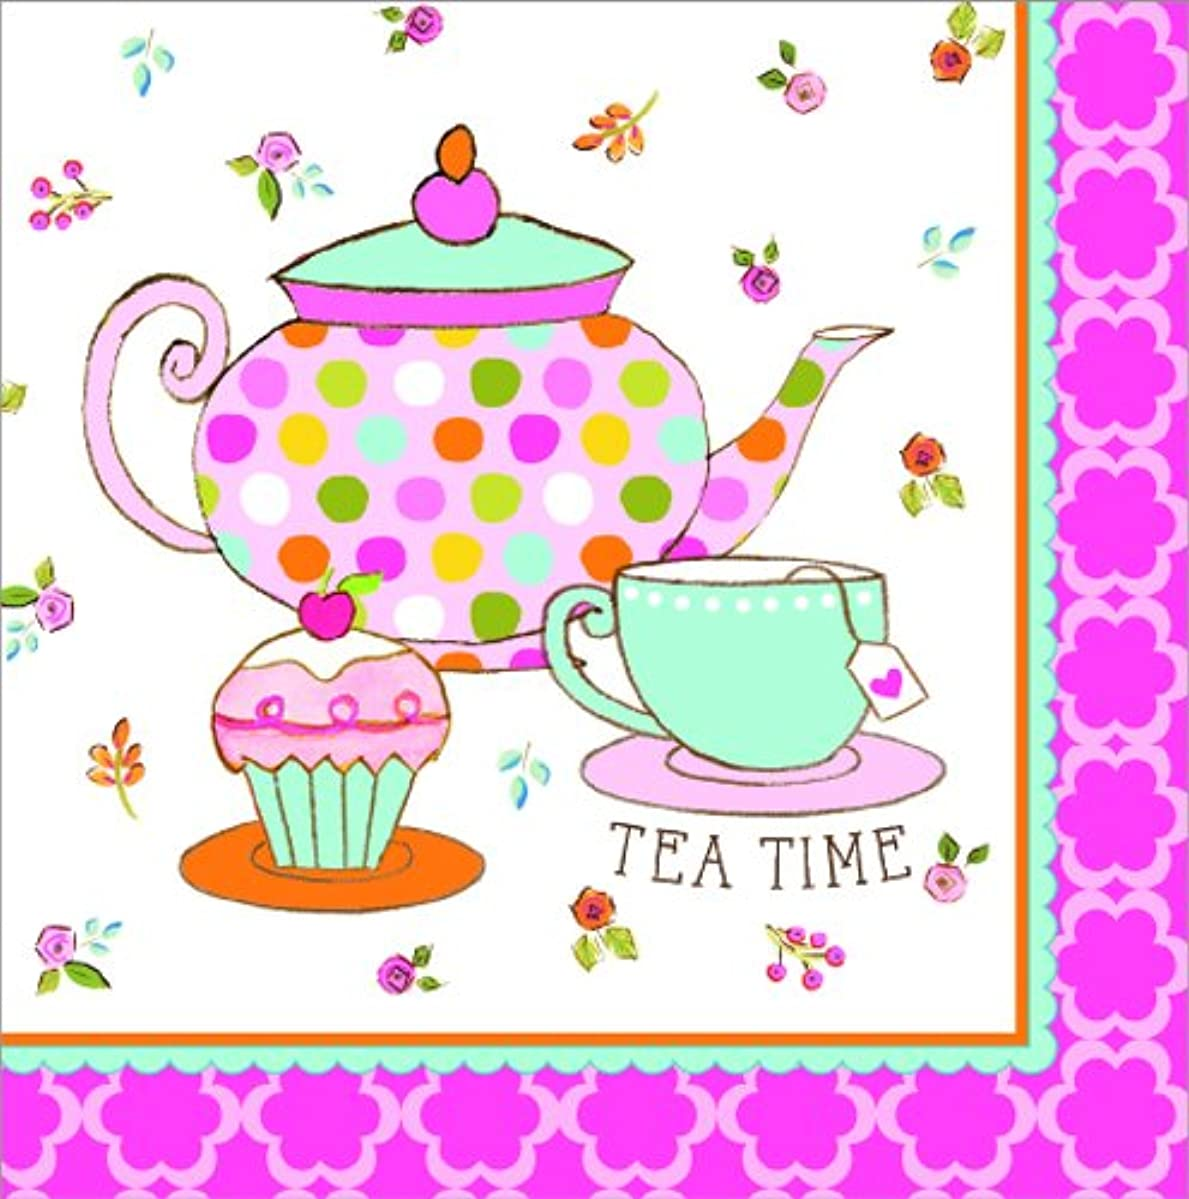 Creative Converting 16 Count Lunch Napkins, Tea Time